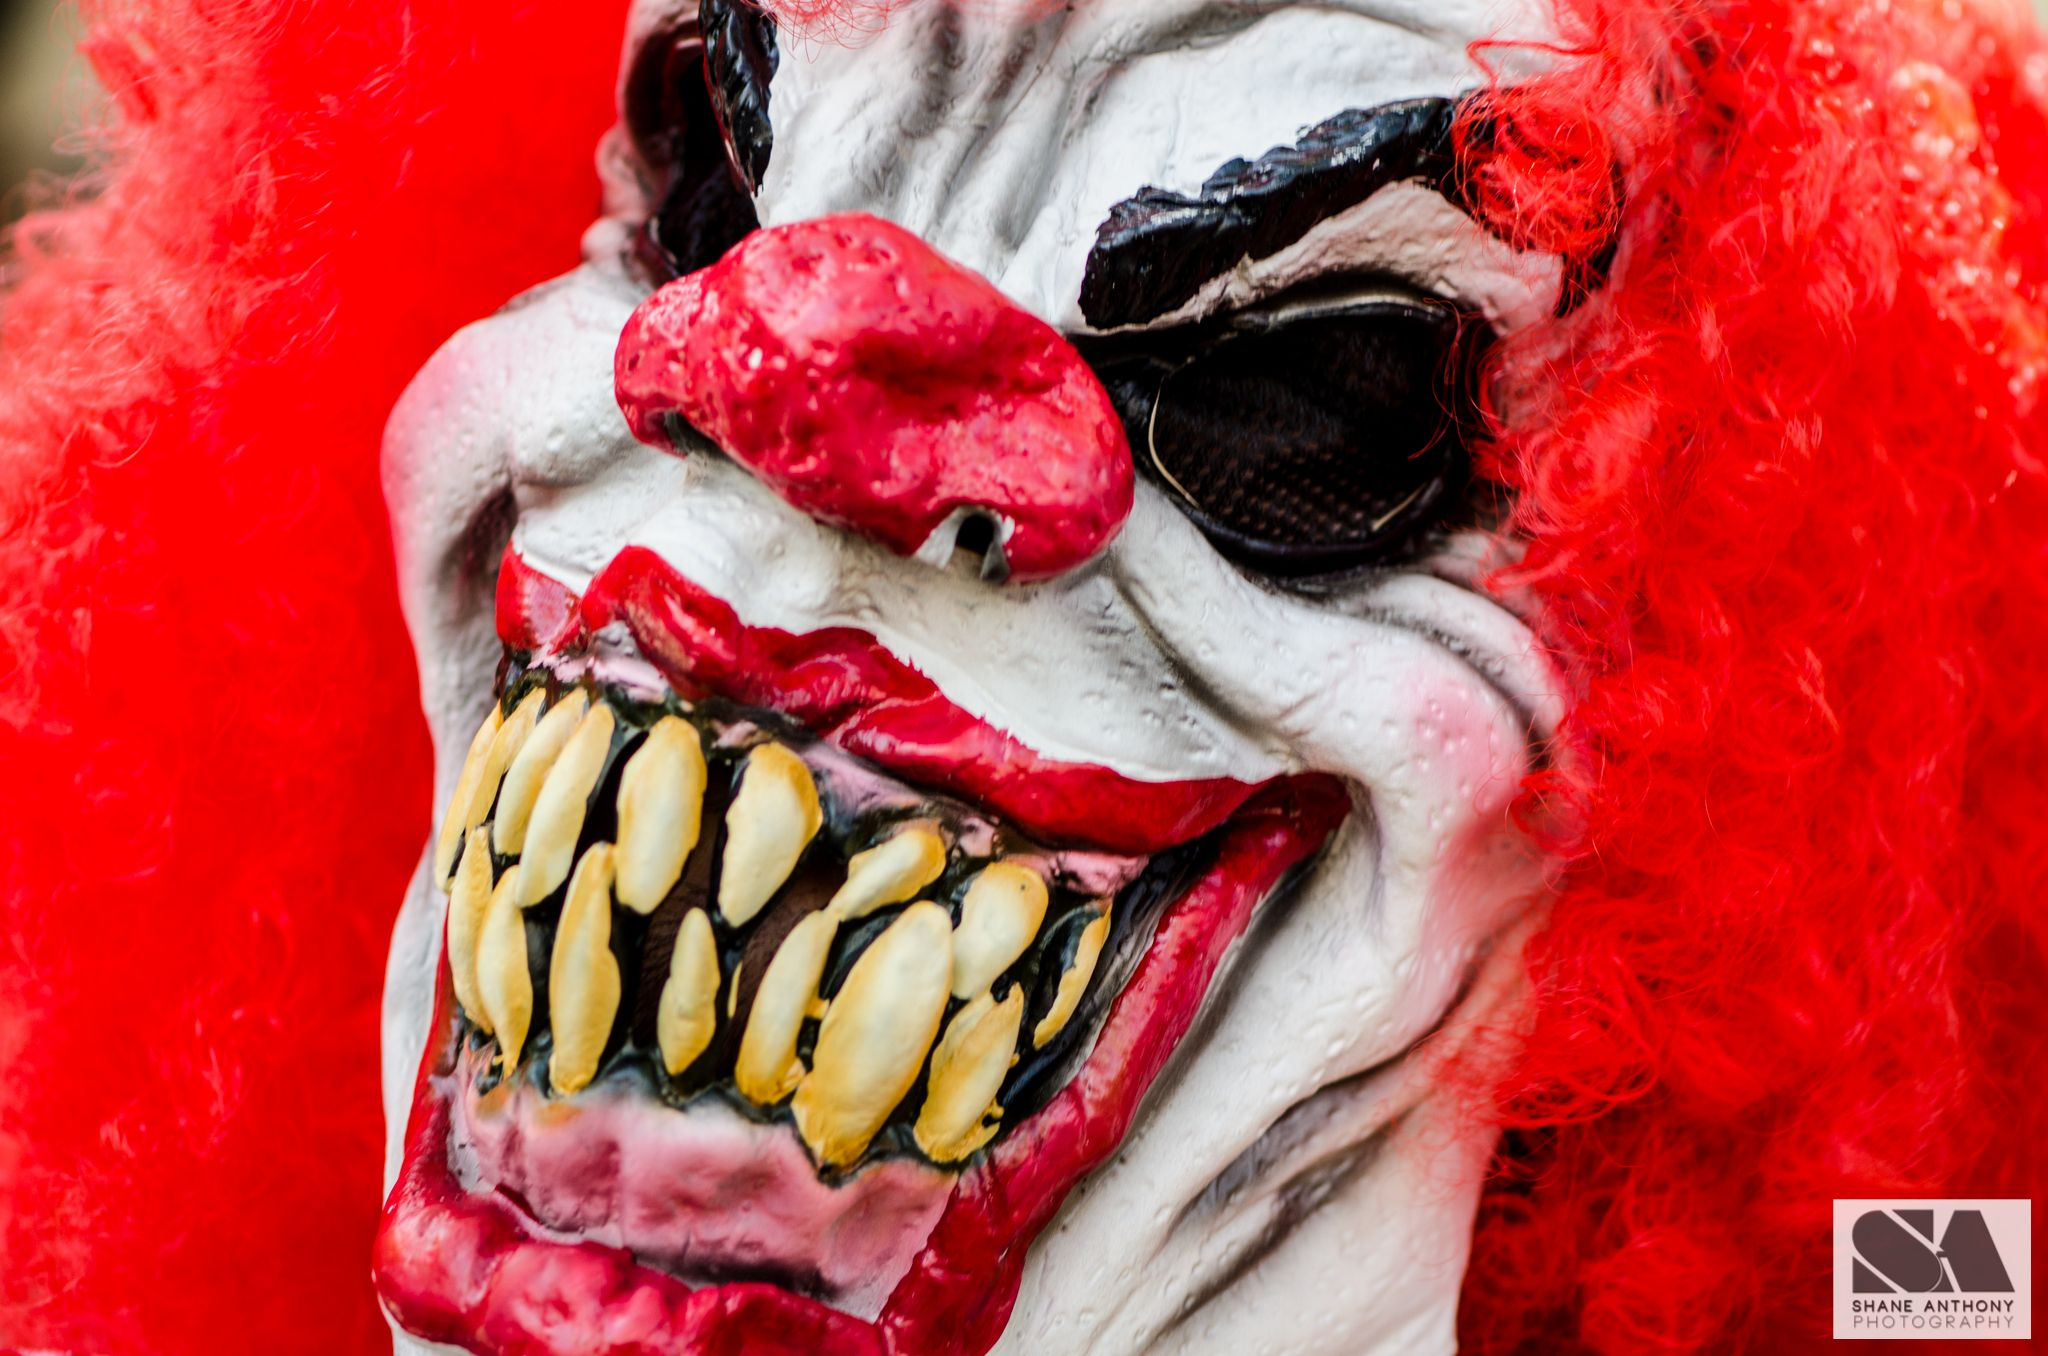 Zombies blood guts and brains at Melbourne zombie shuffle 2014. Evil clown